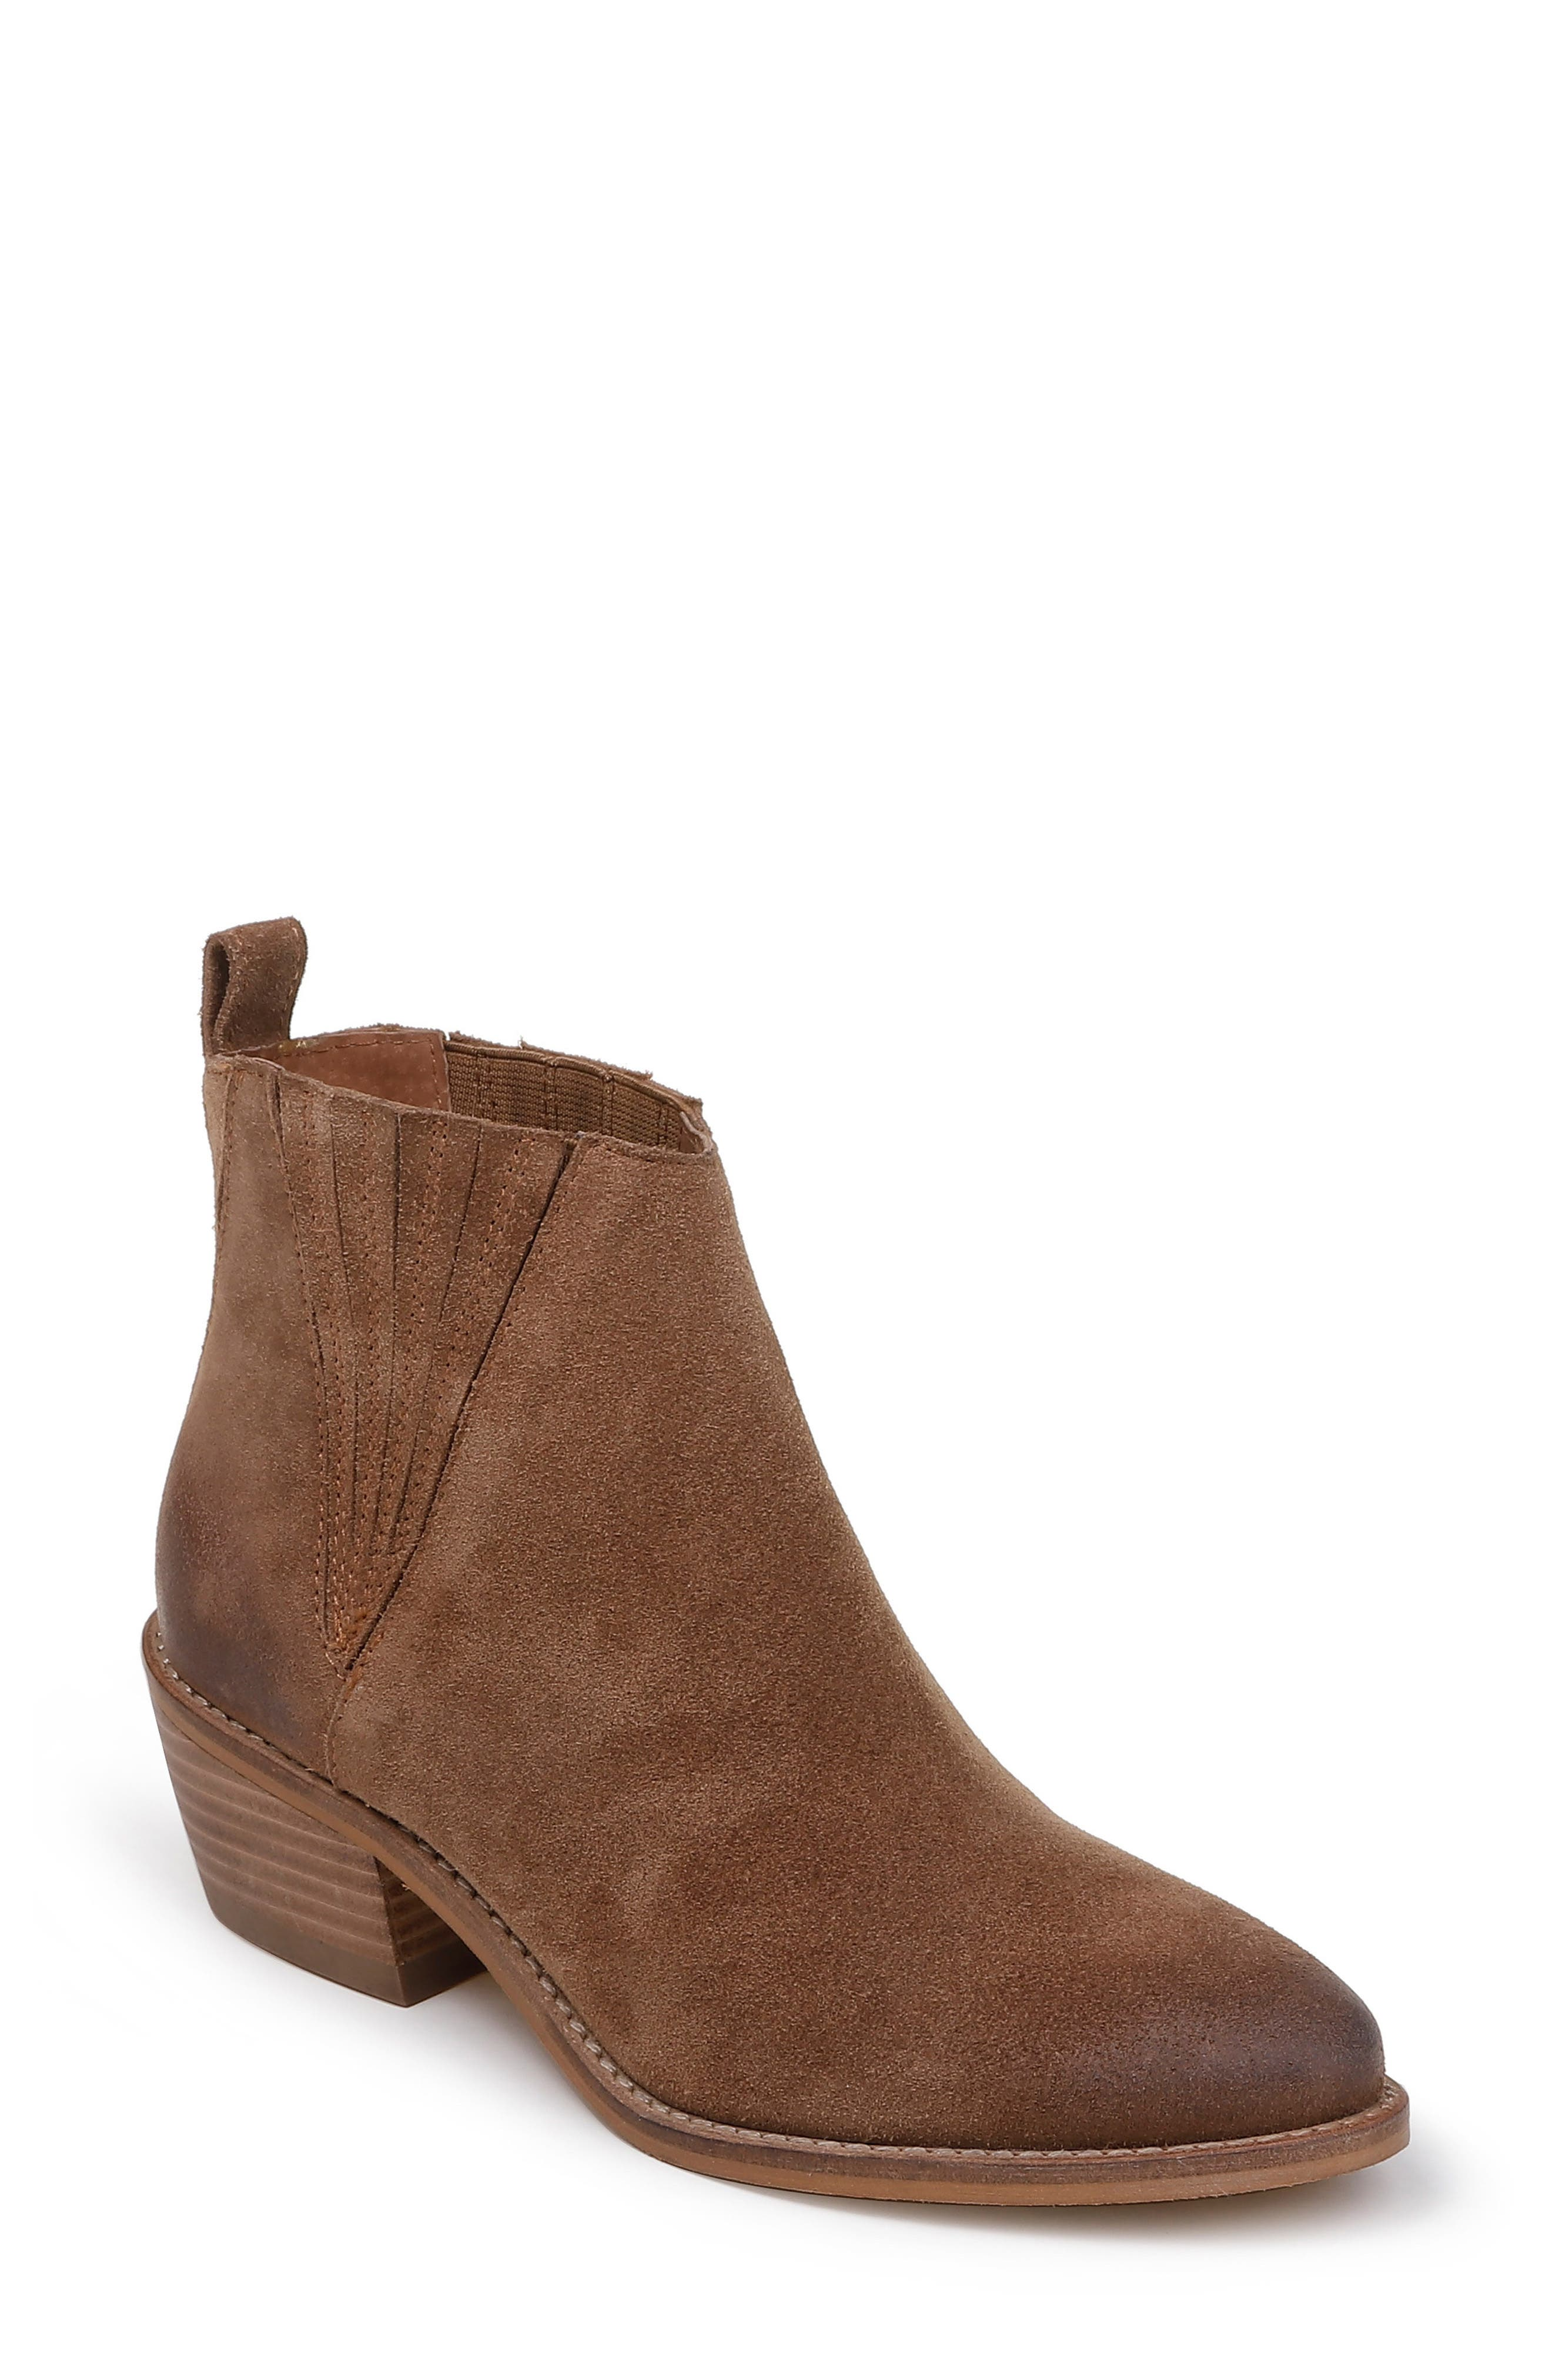 SPLENDID Women'S Cupid Suede Booties in Cognac Suede